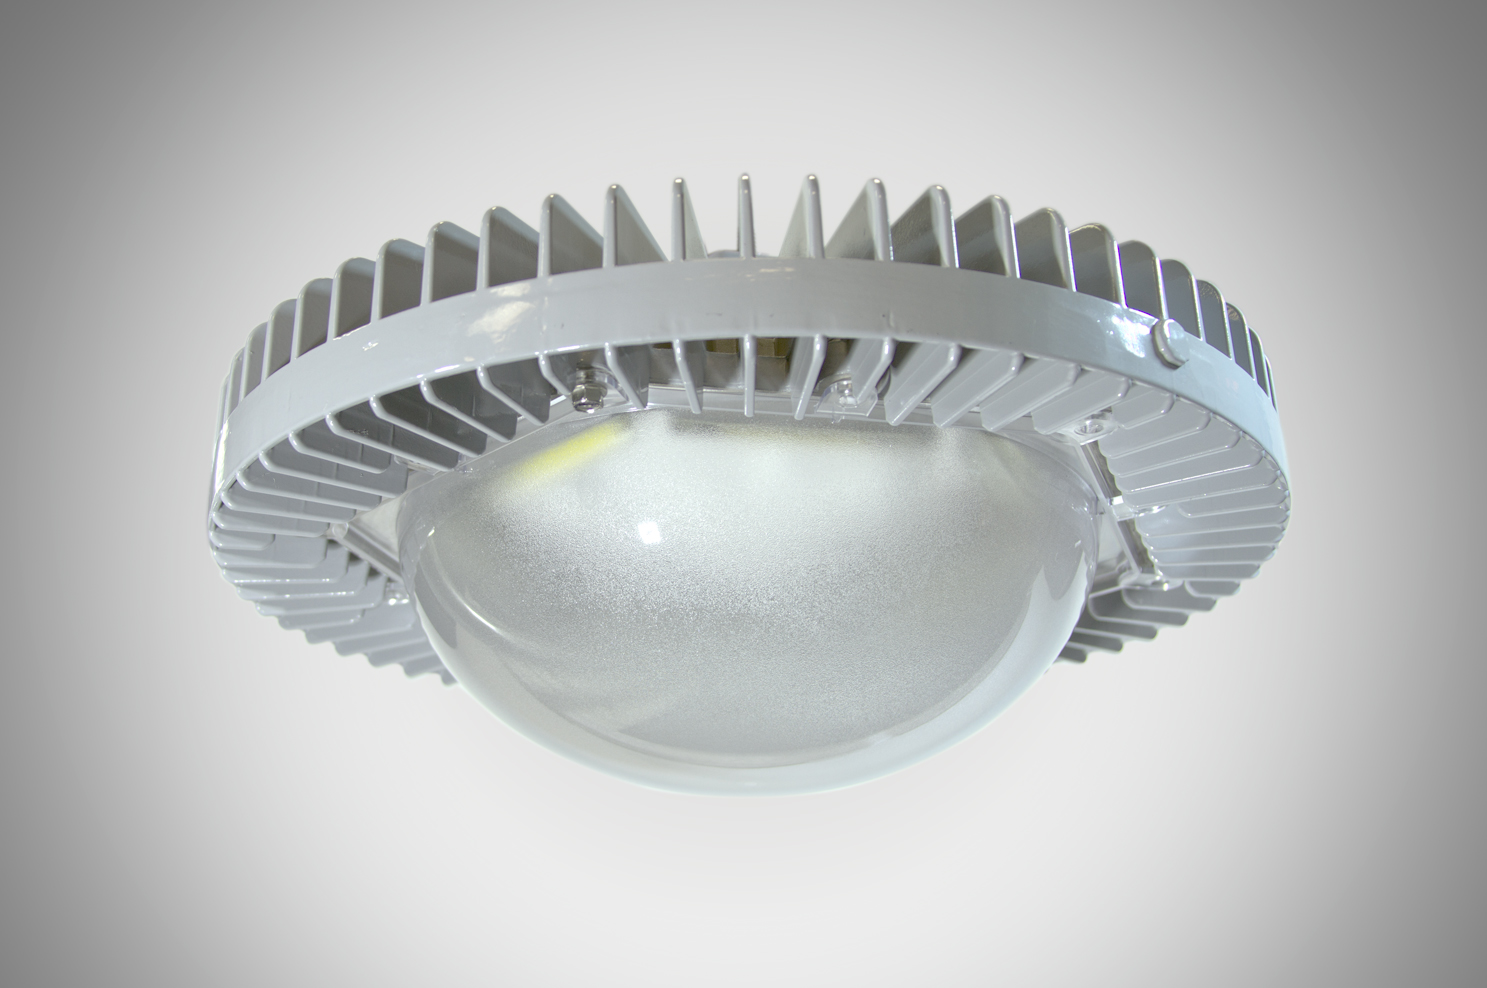 Dialight Adds 45w Durosite Led Low Bay Fixture To Industrial Lighting Family